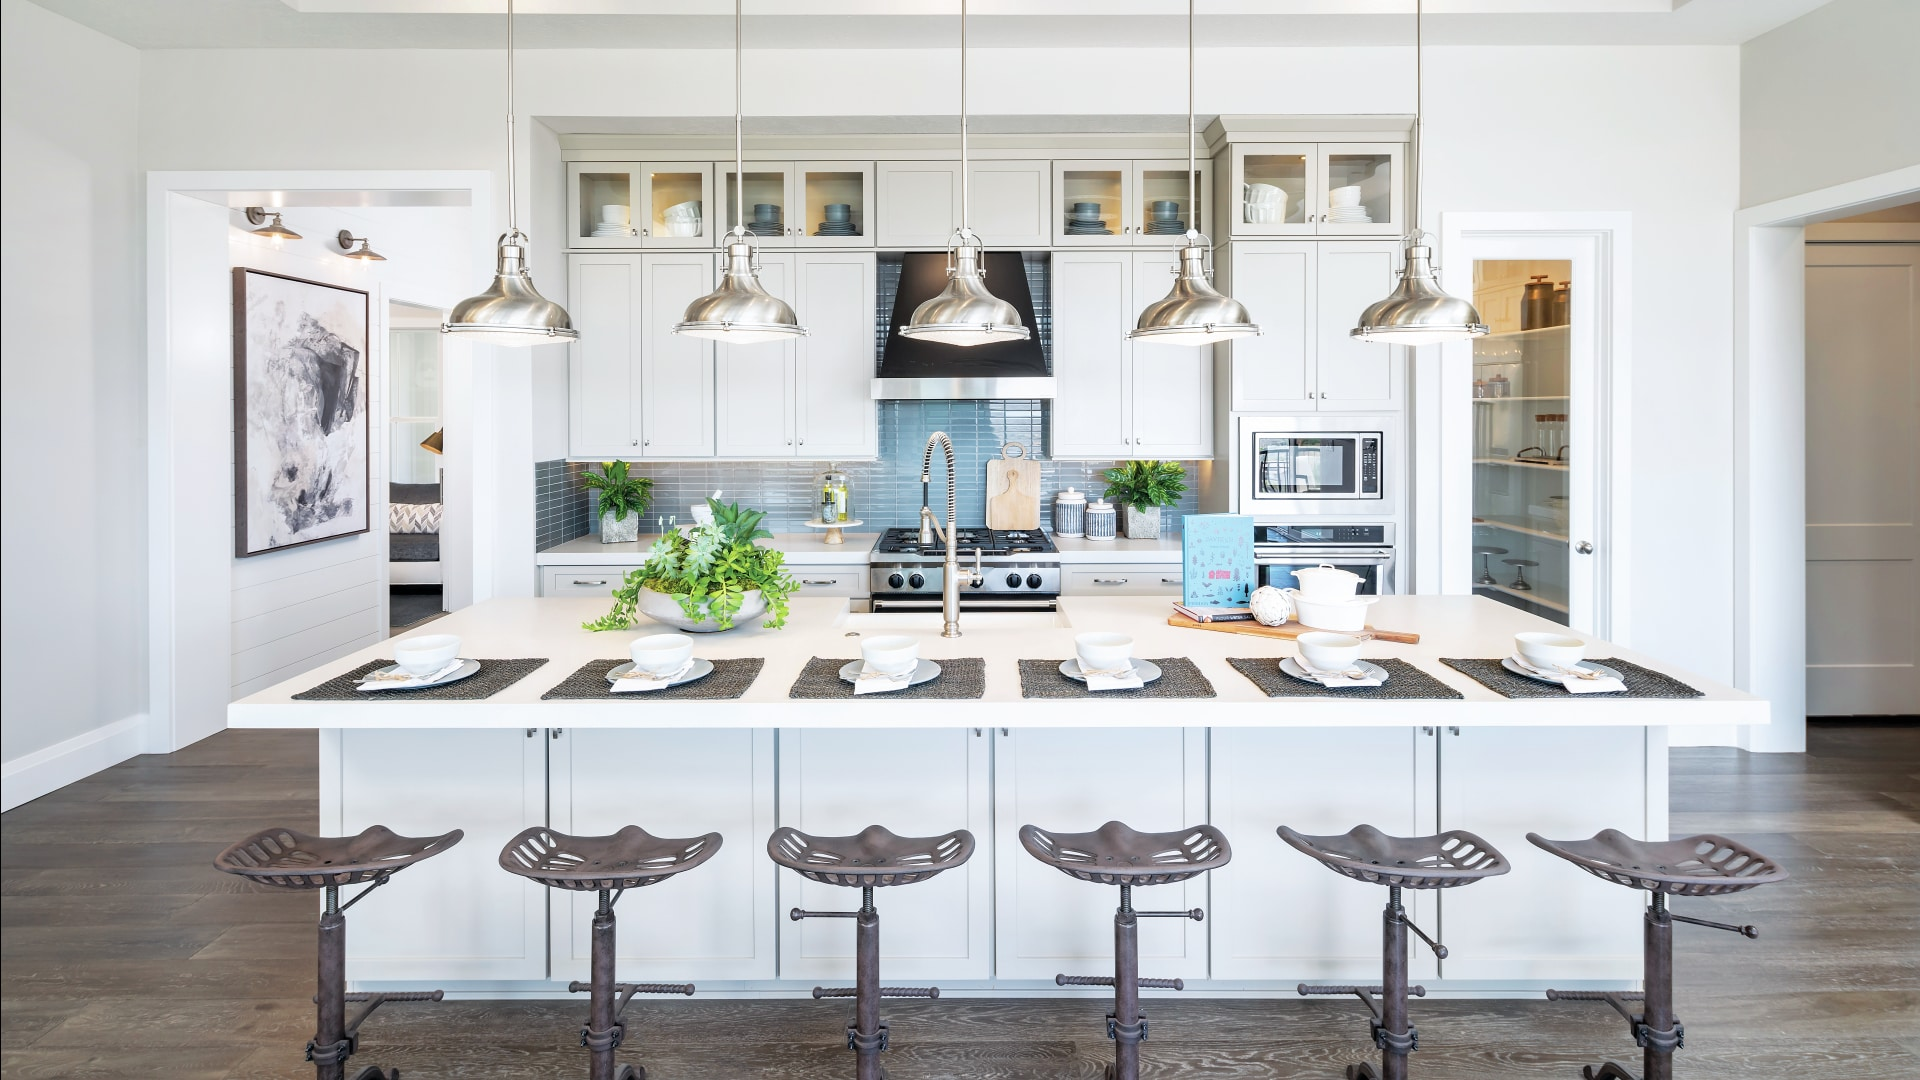 Gourmet kitchens with large islands and breakfast bars